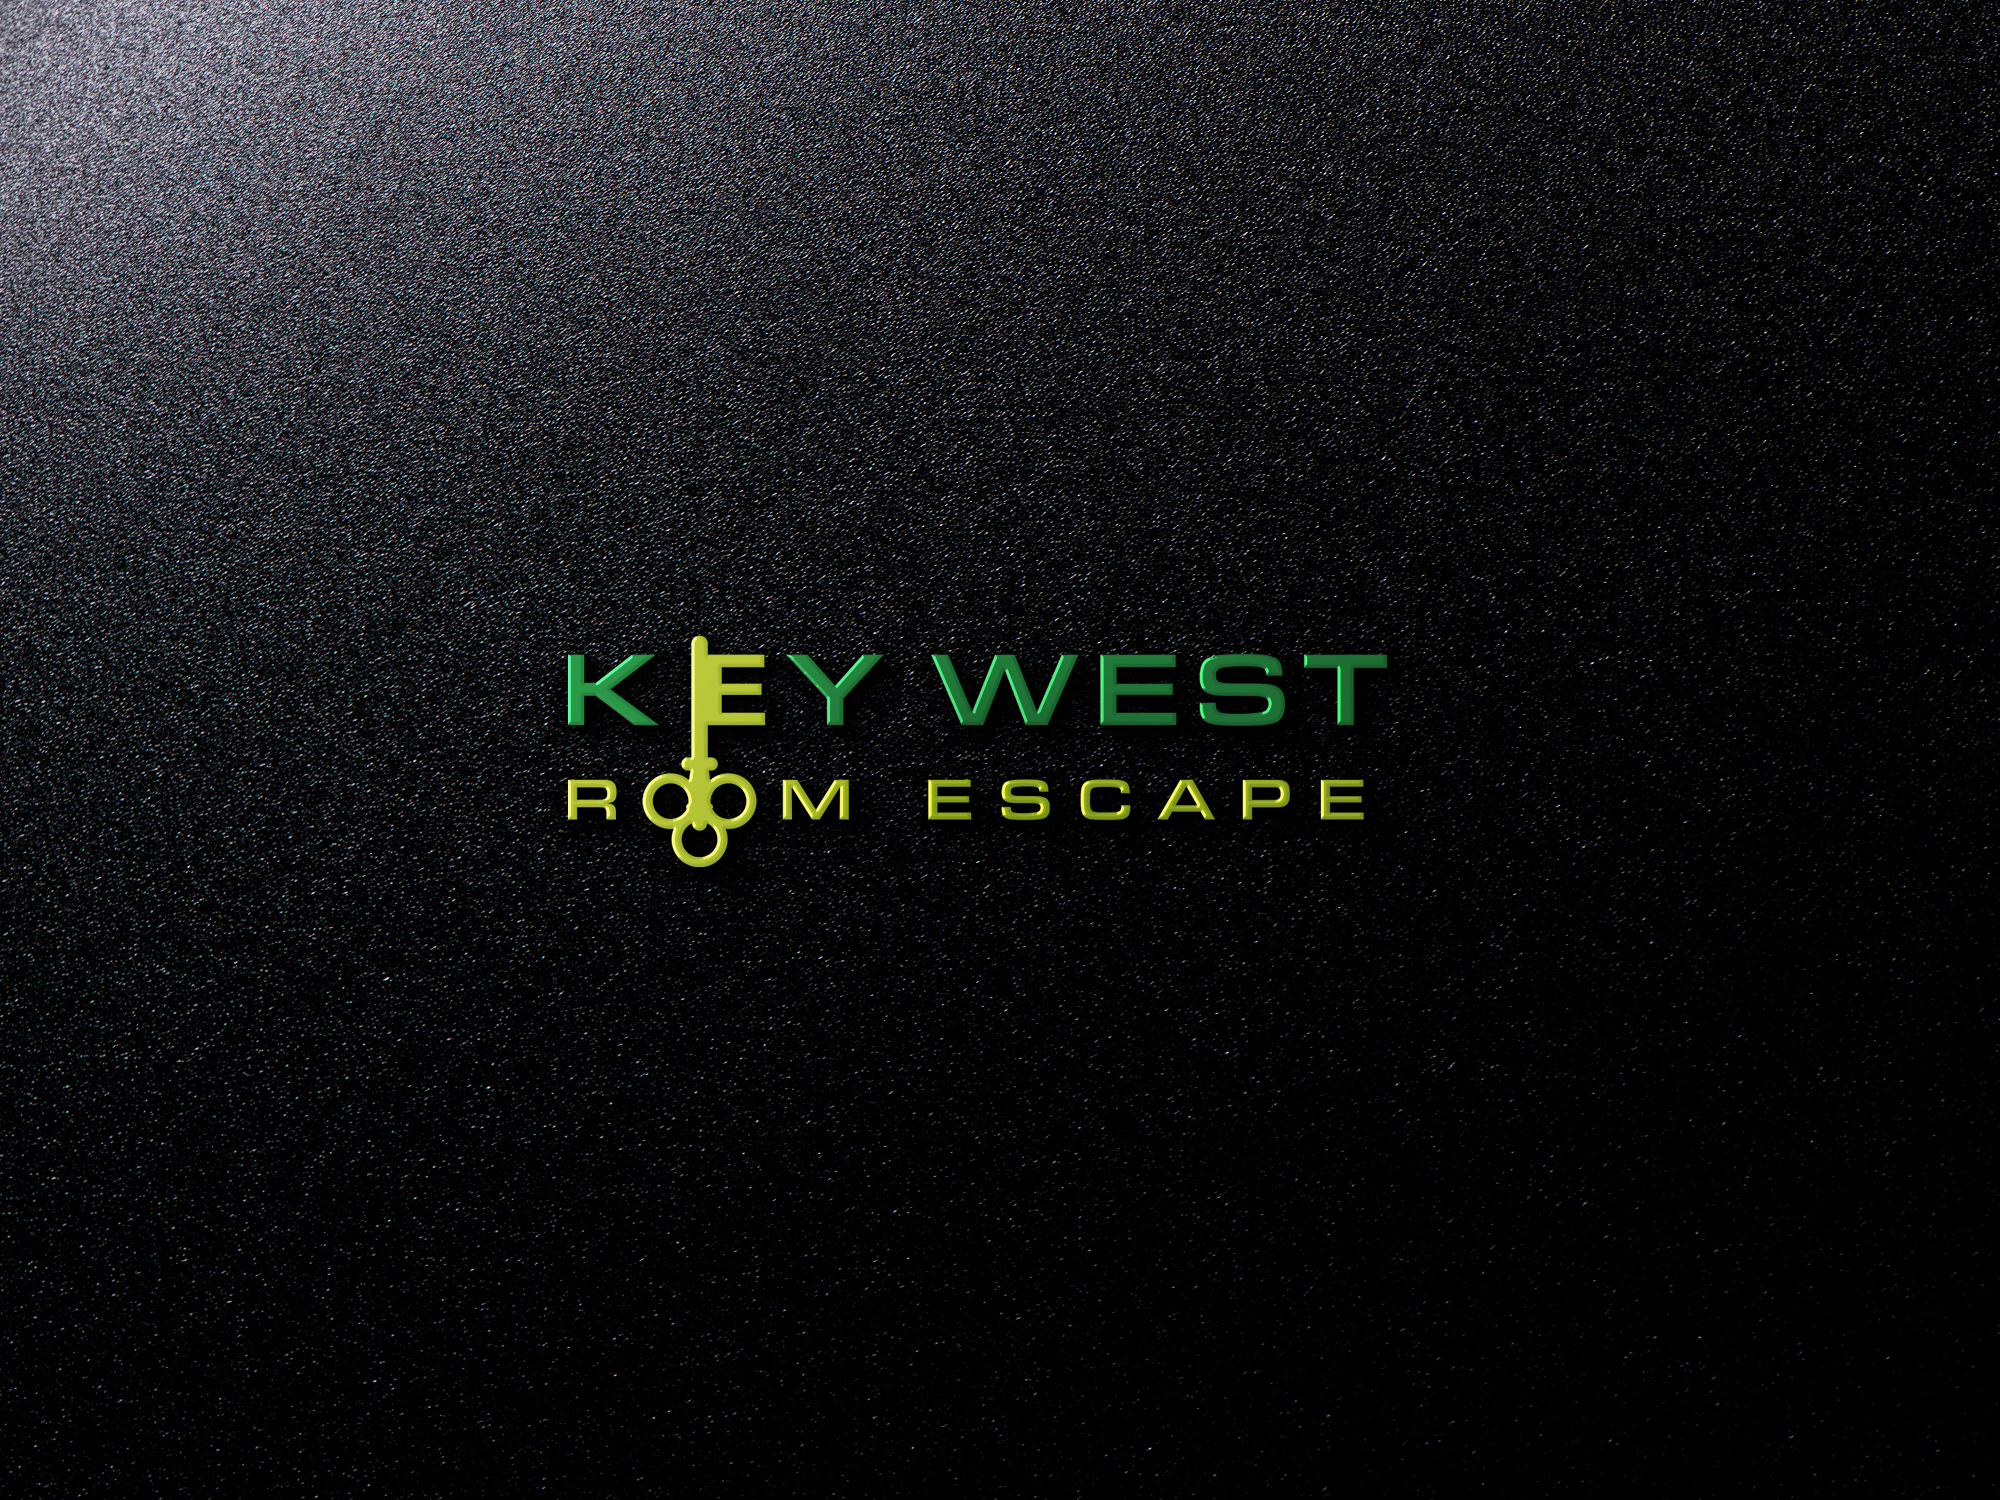 This is a mockup of Key West Room Escape's logo in green and yellow